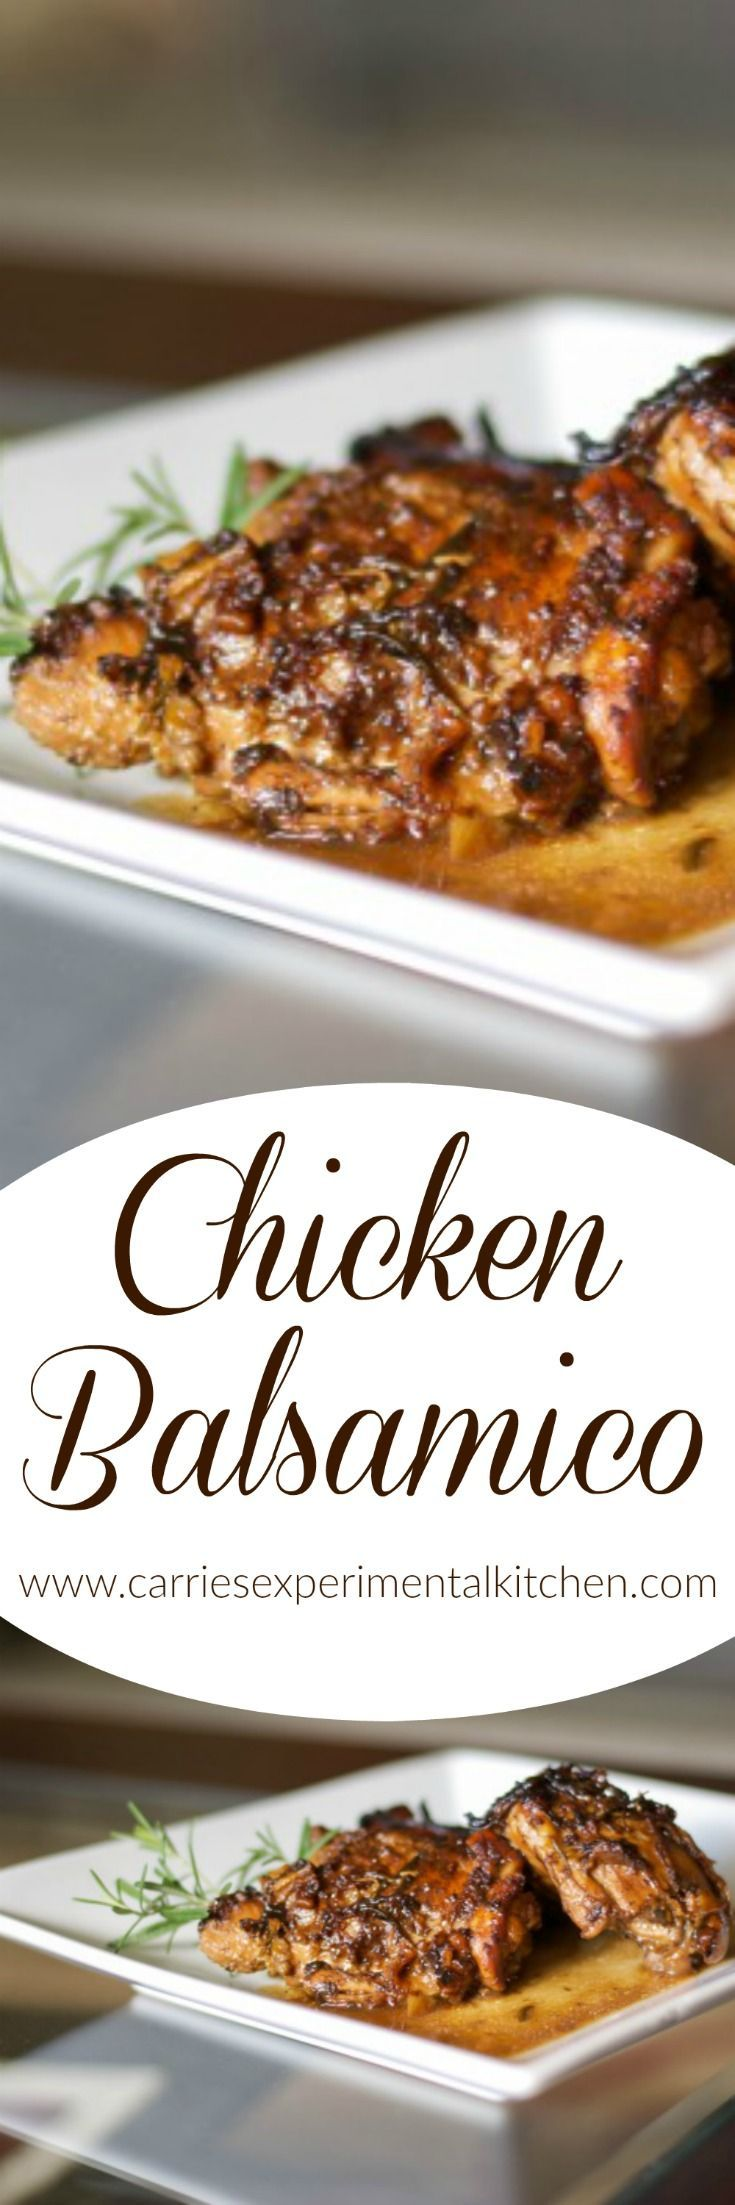 Your family is going to love Chicken Balsamico made with bone-in chicken thighs cooked in a balsamic white wine sauce with fresh chopped rosemary.